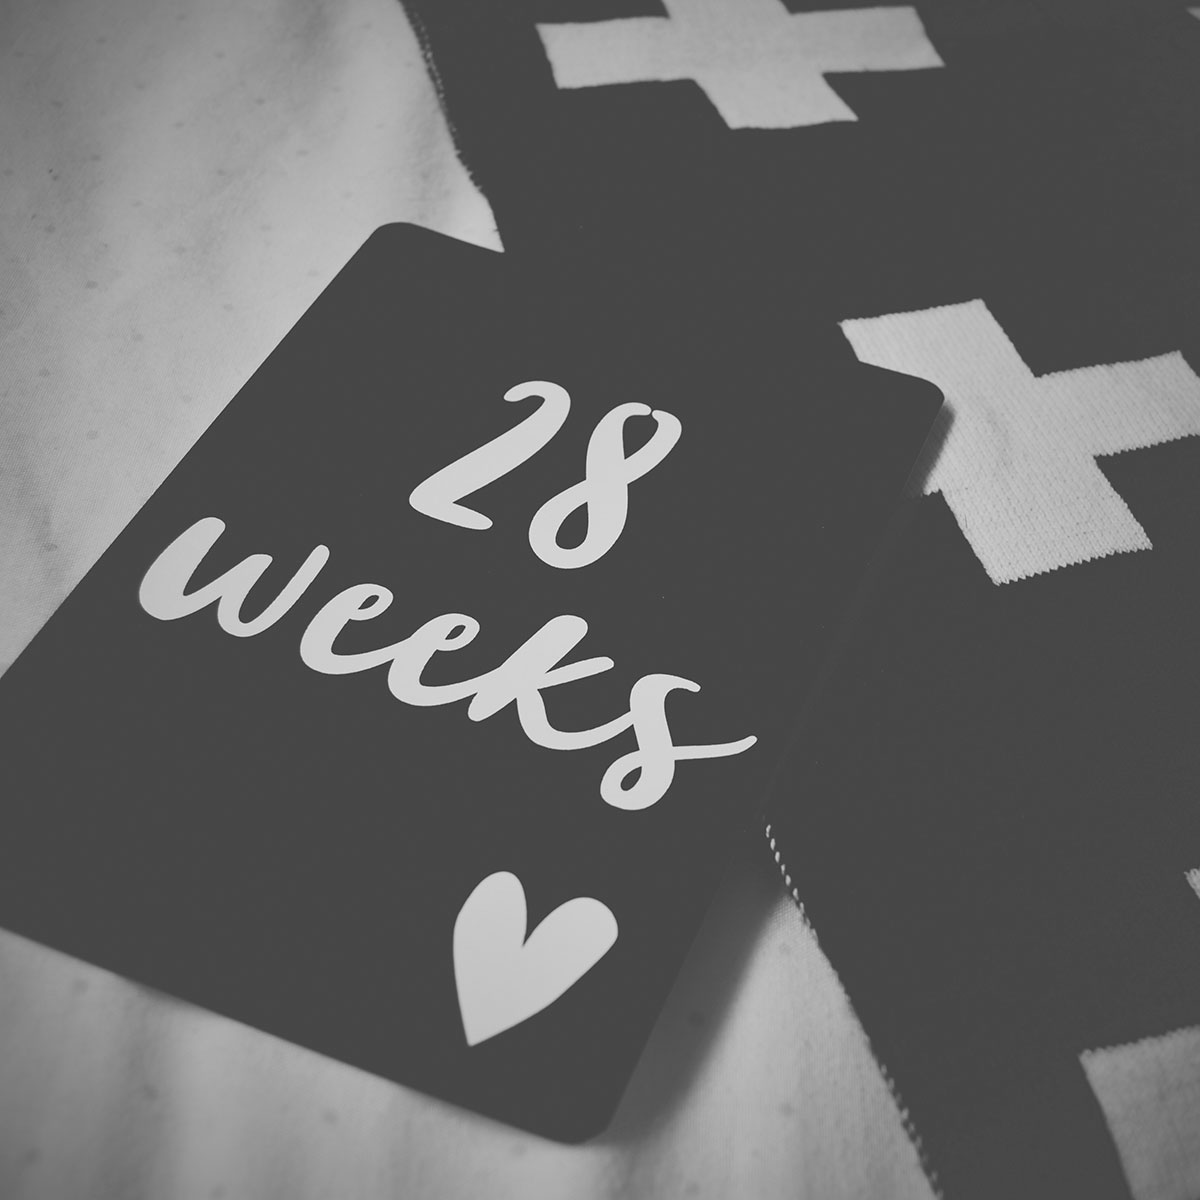 Our month in insta-snaps; May 2016 - Leni and Co pregnancy milestone monochrome cards and cross blanket for pregnancy update, 28 weeks in third trimester